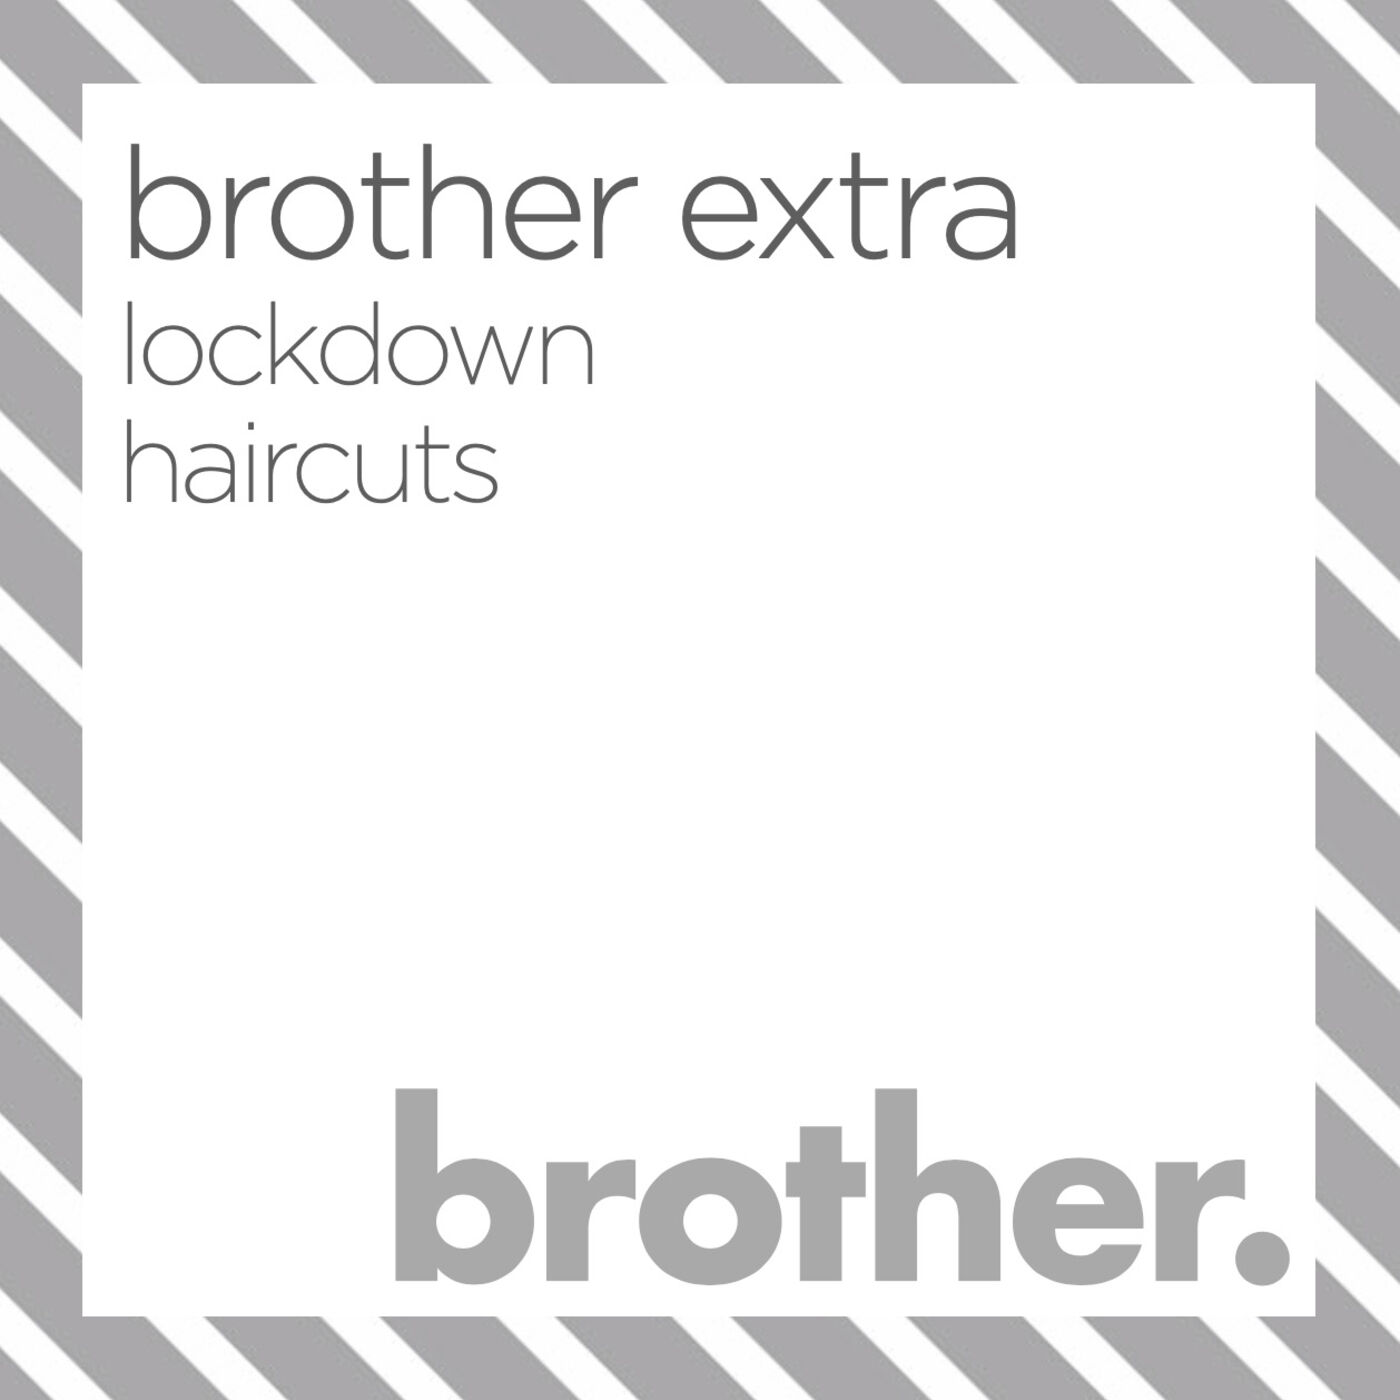 Brother Extra: Lockdown Haircuts